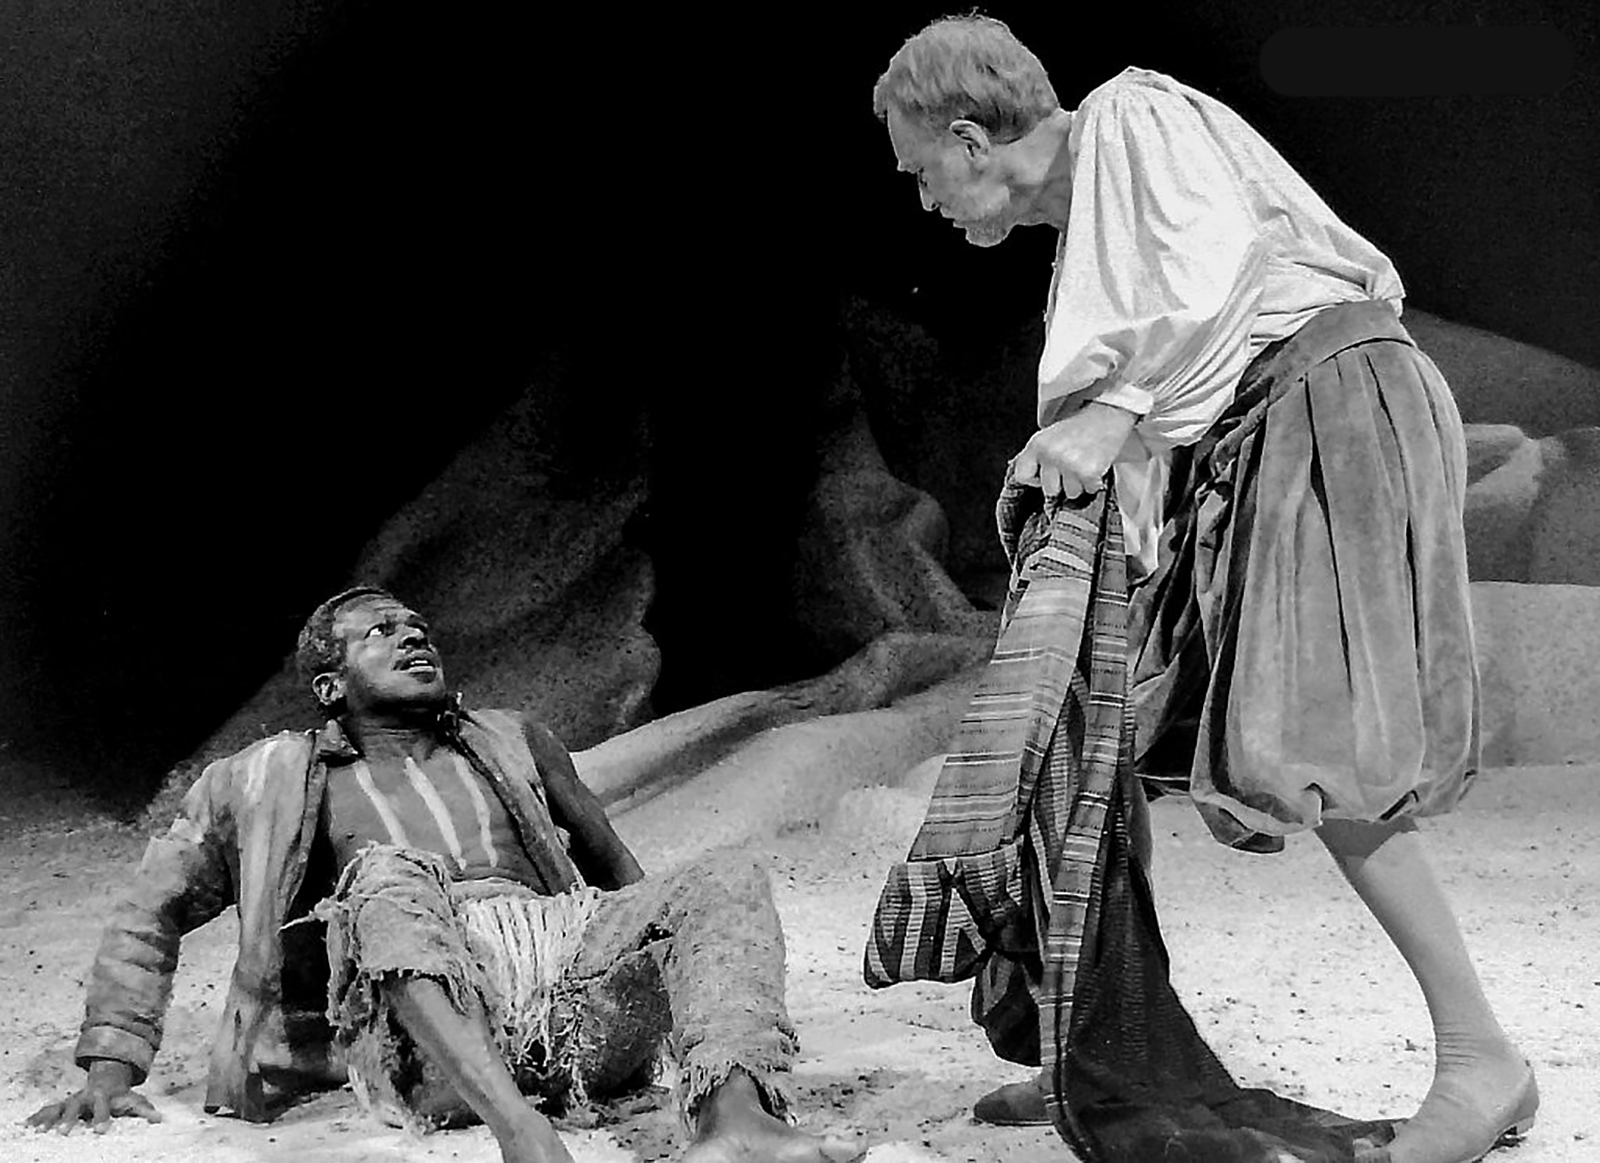 A man sits on the floor, leaning back on his hands, staring fearfully at another man looming over him.